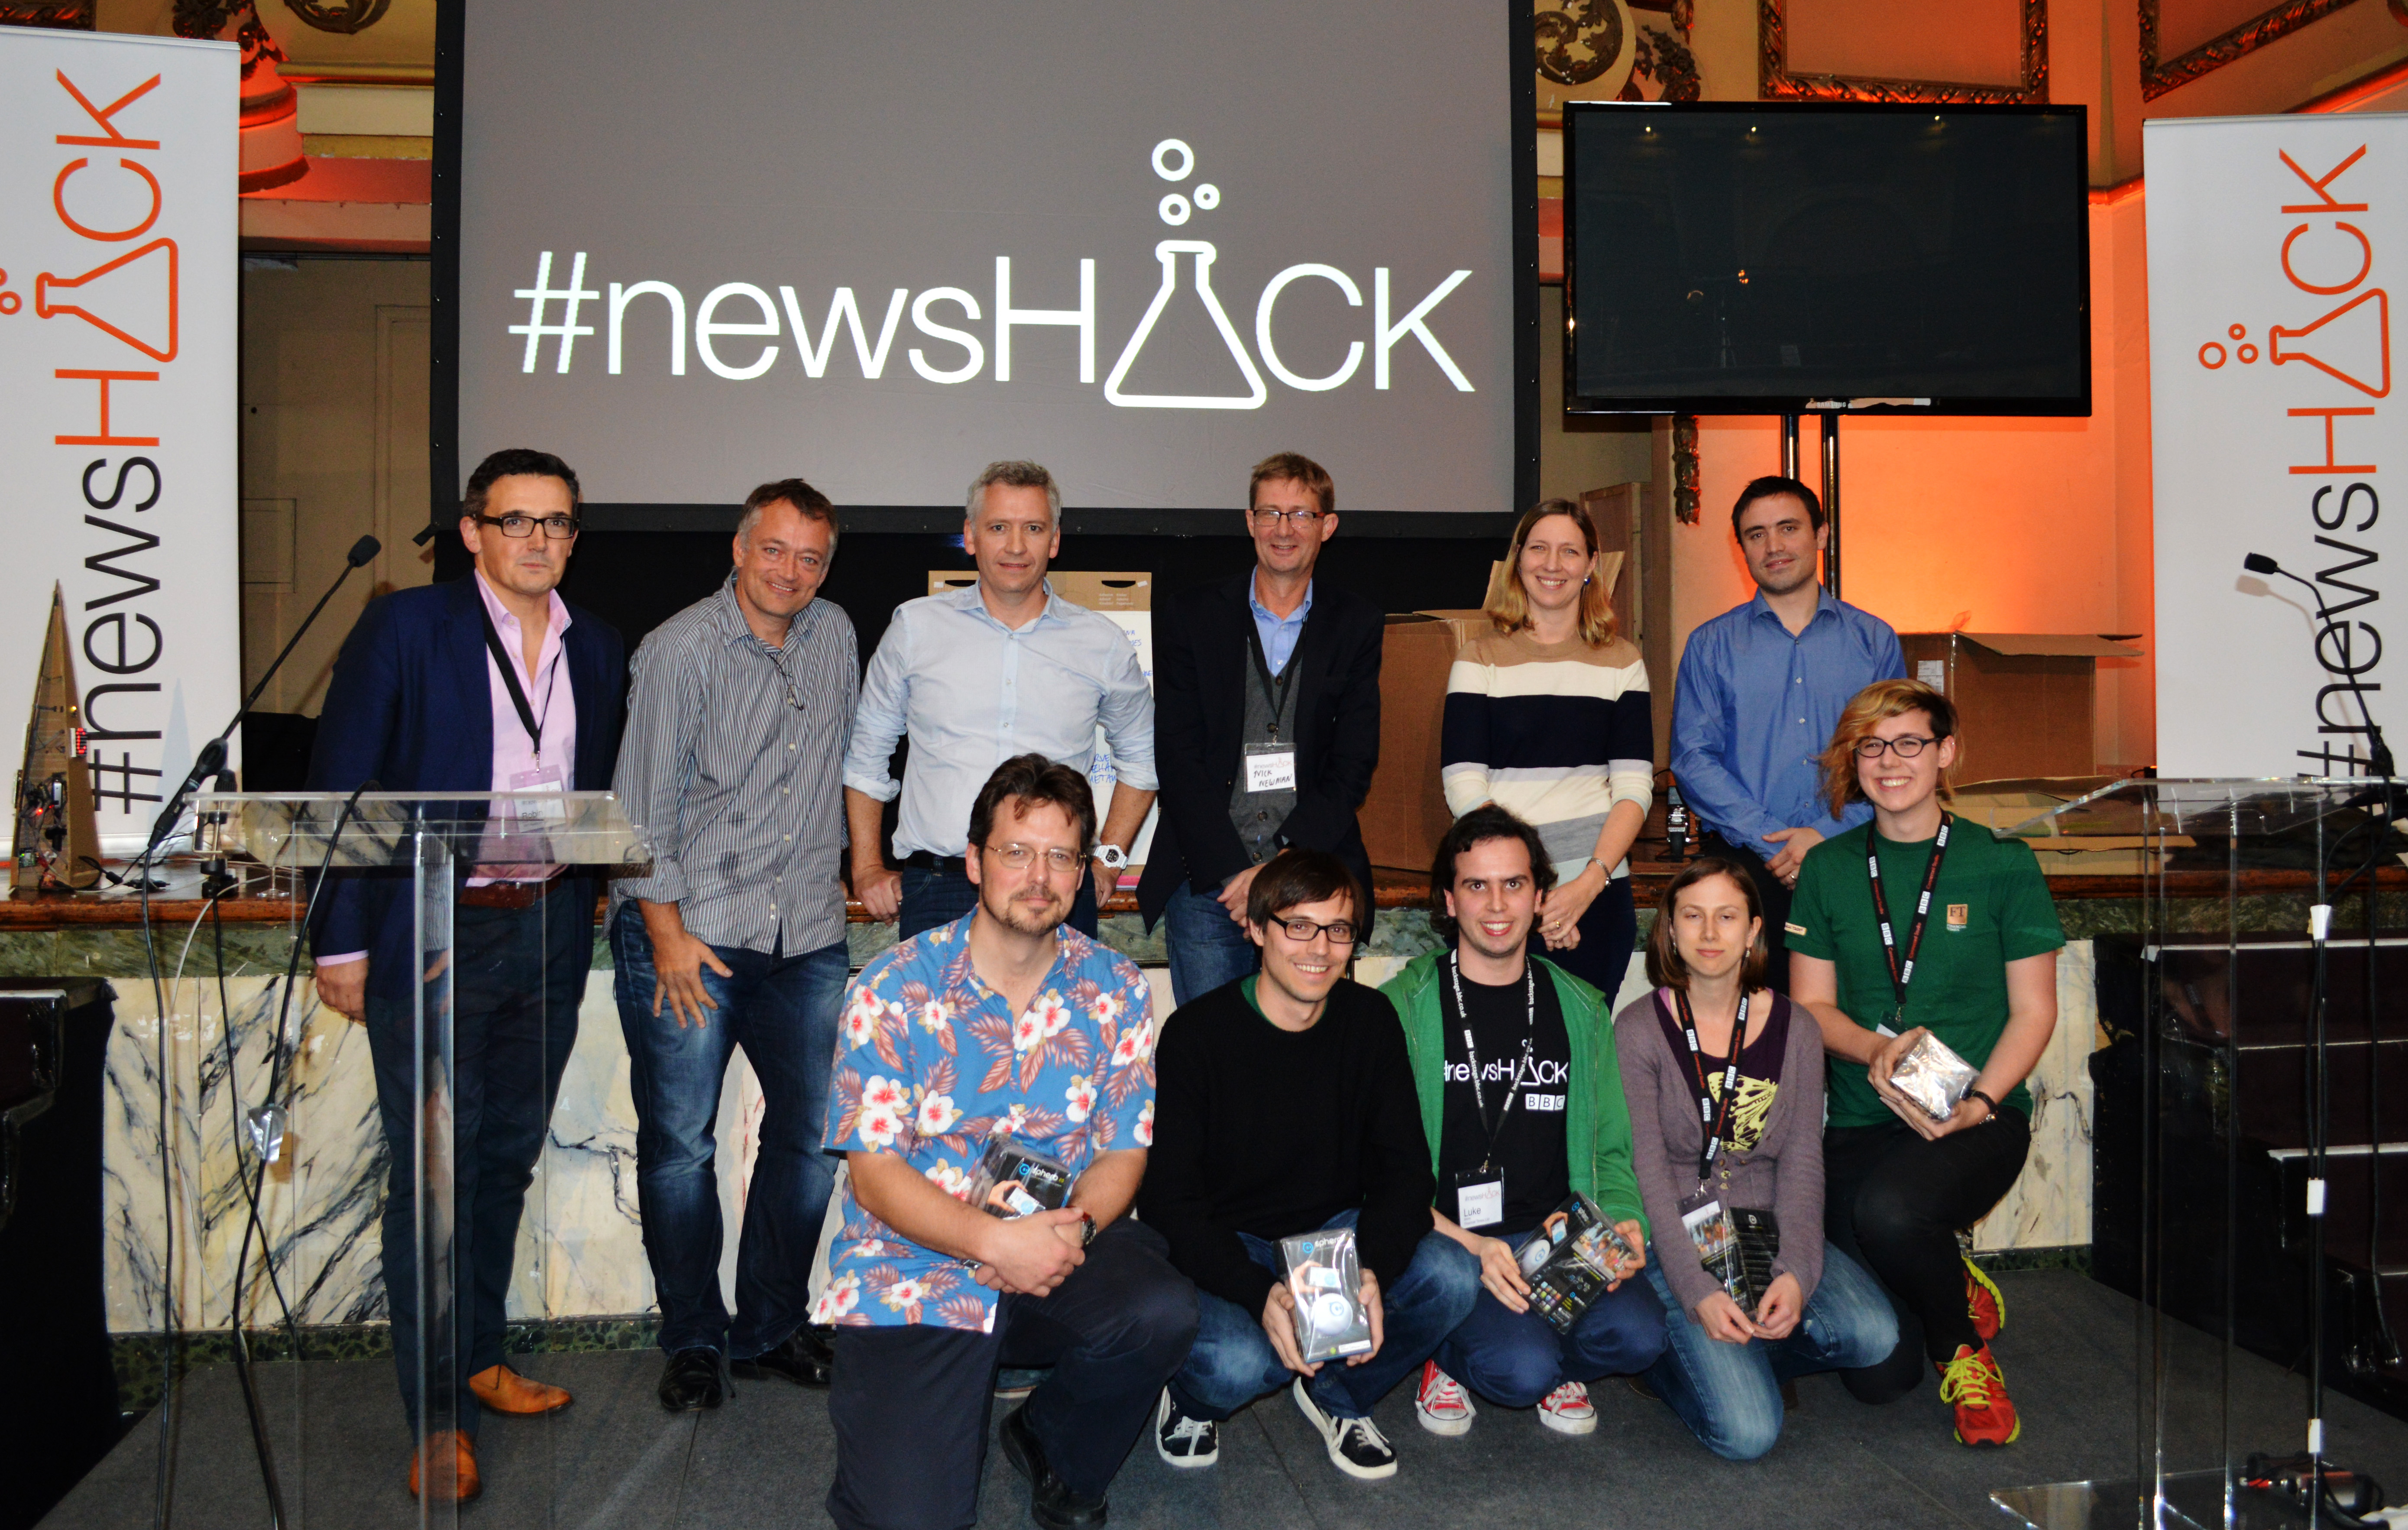 FT - Winners of Best in Show at #newsHACK 2013